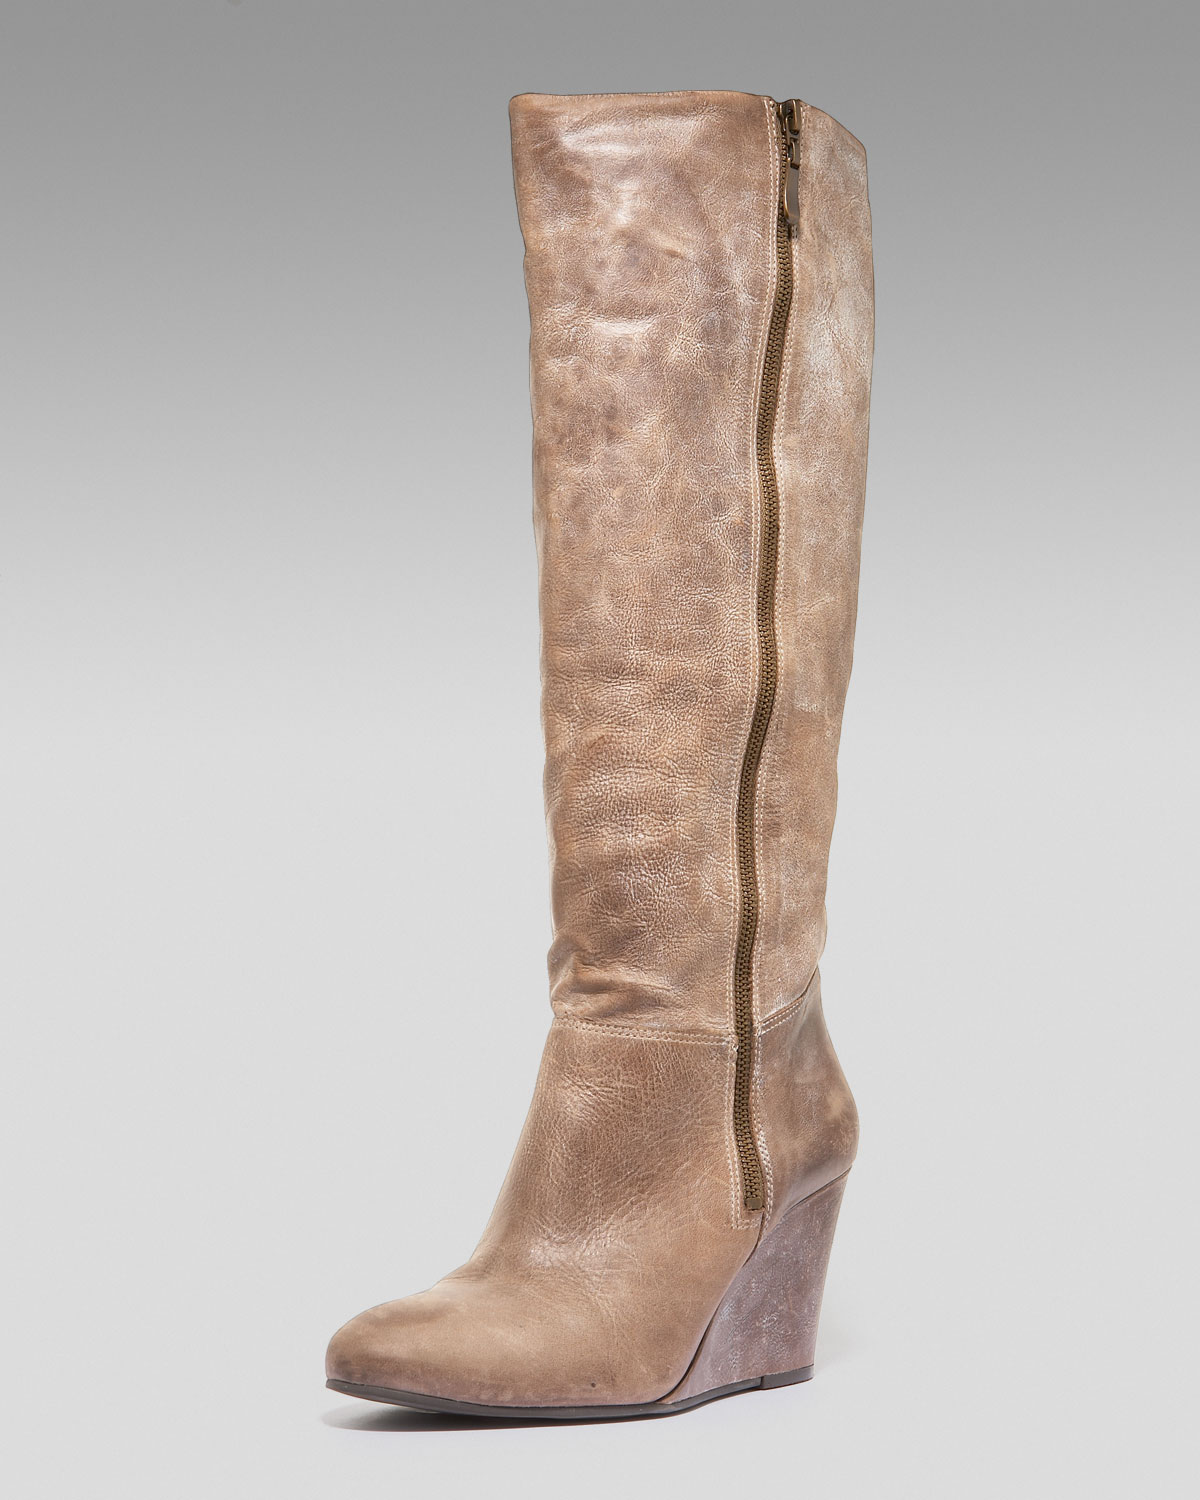 steven by steve madden meteour wedge boots in beige